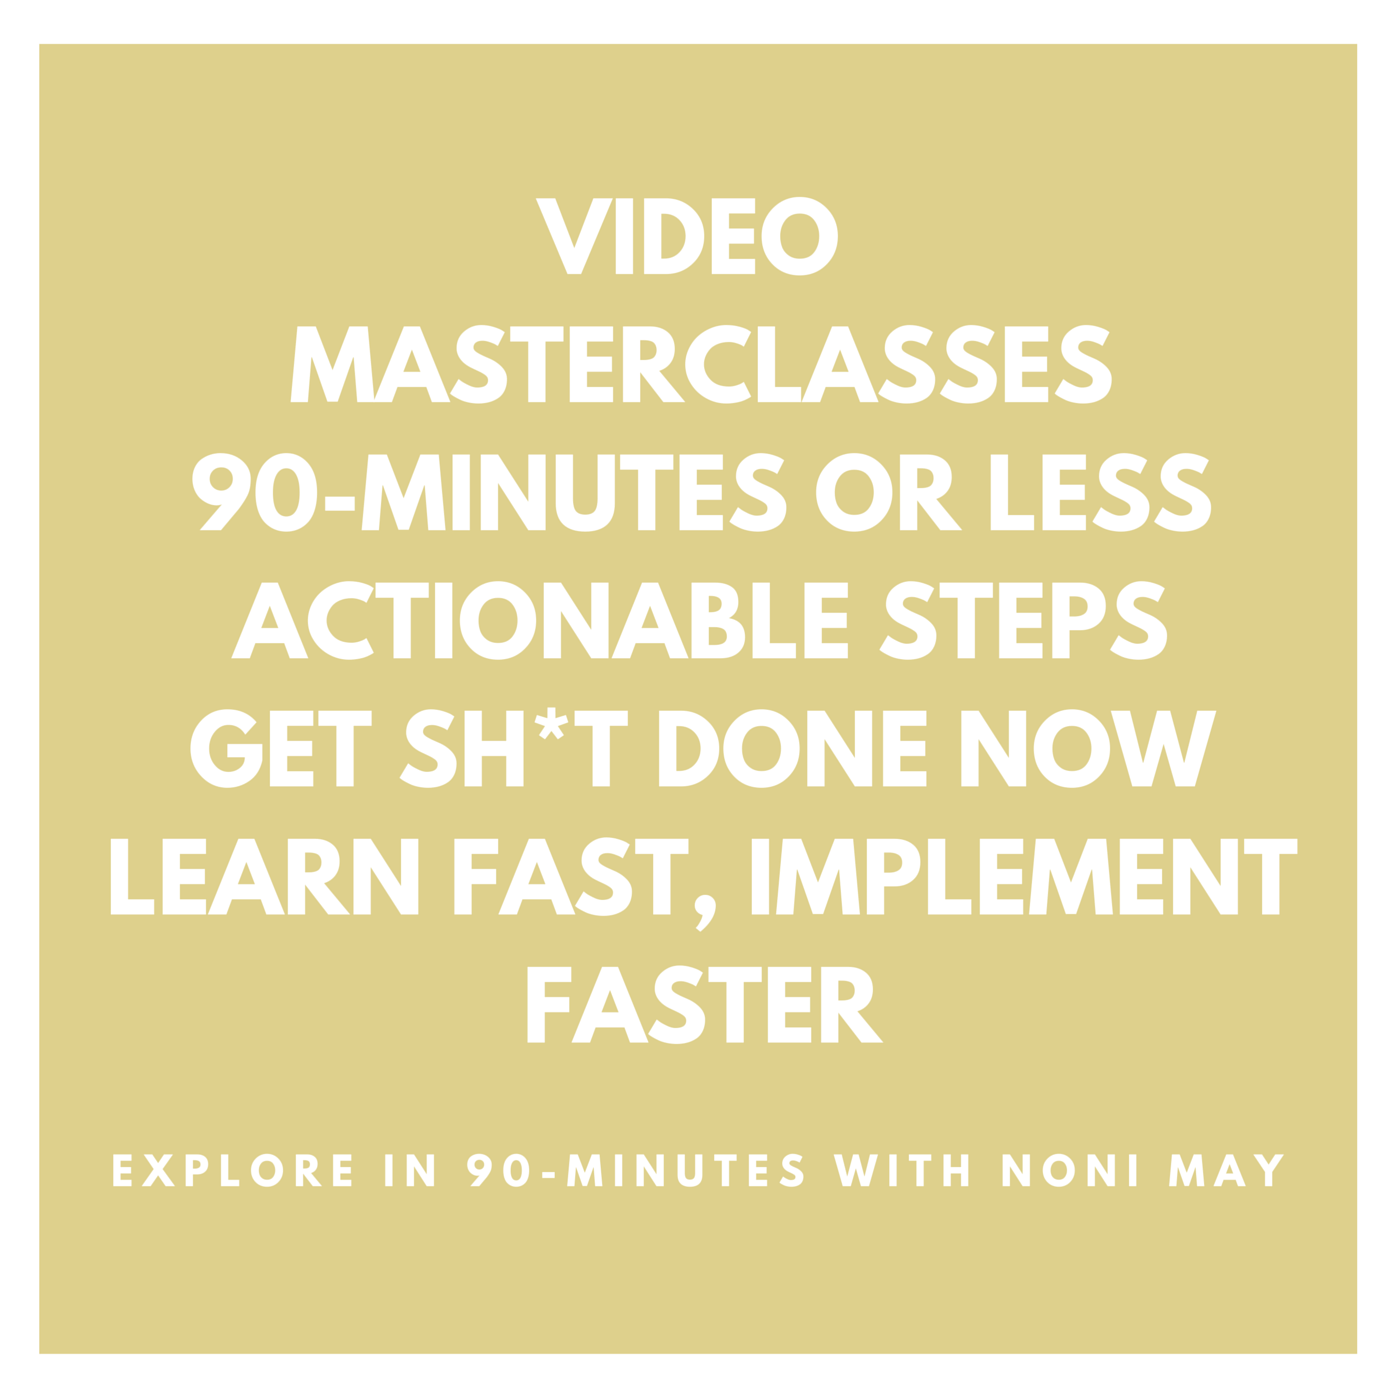 VIDEO MASTERCLASSES 90-MINUTES OR LESS ACTIONABLE STEPS GET SH-T DONE NOW LEARN FAST, IMPLEMENT FASTEr